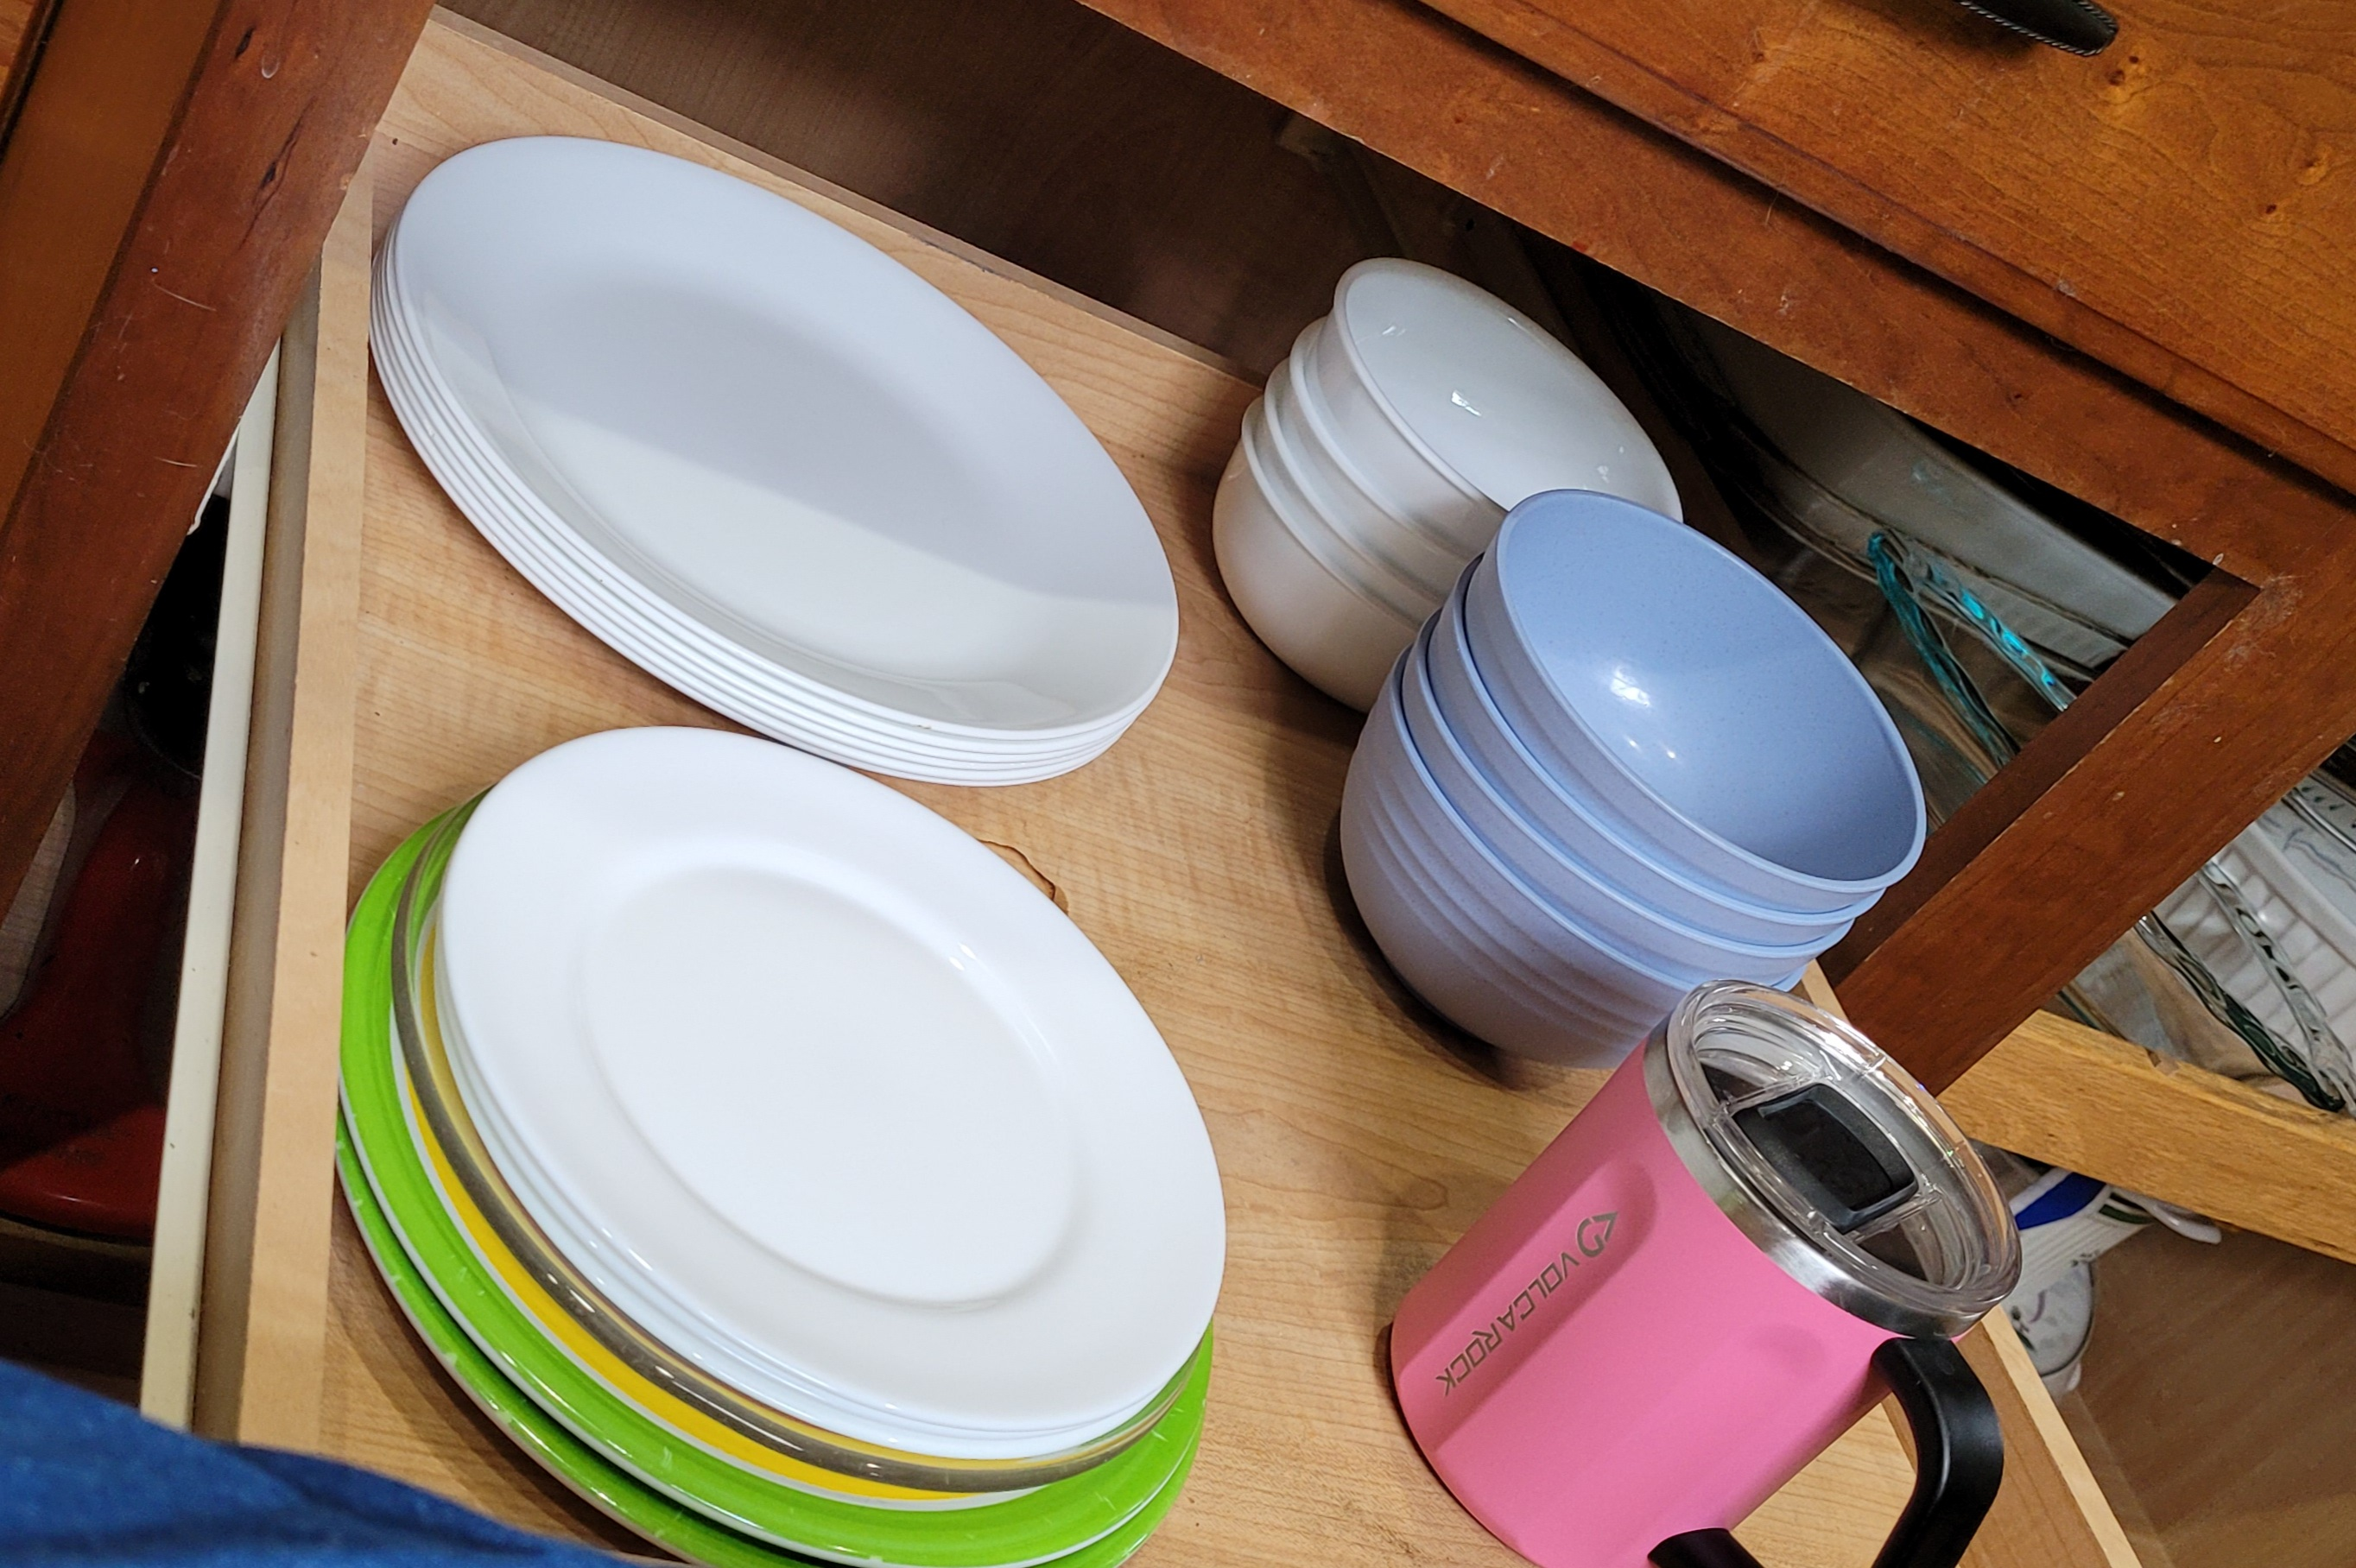 Cabinet pull out shelf with plates, bowls, and travel mug.